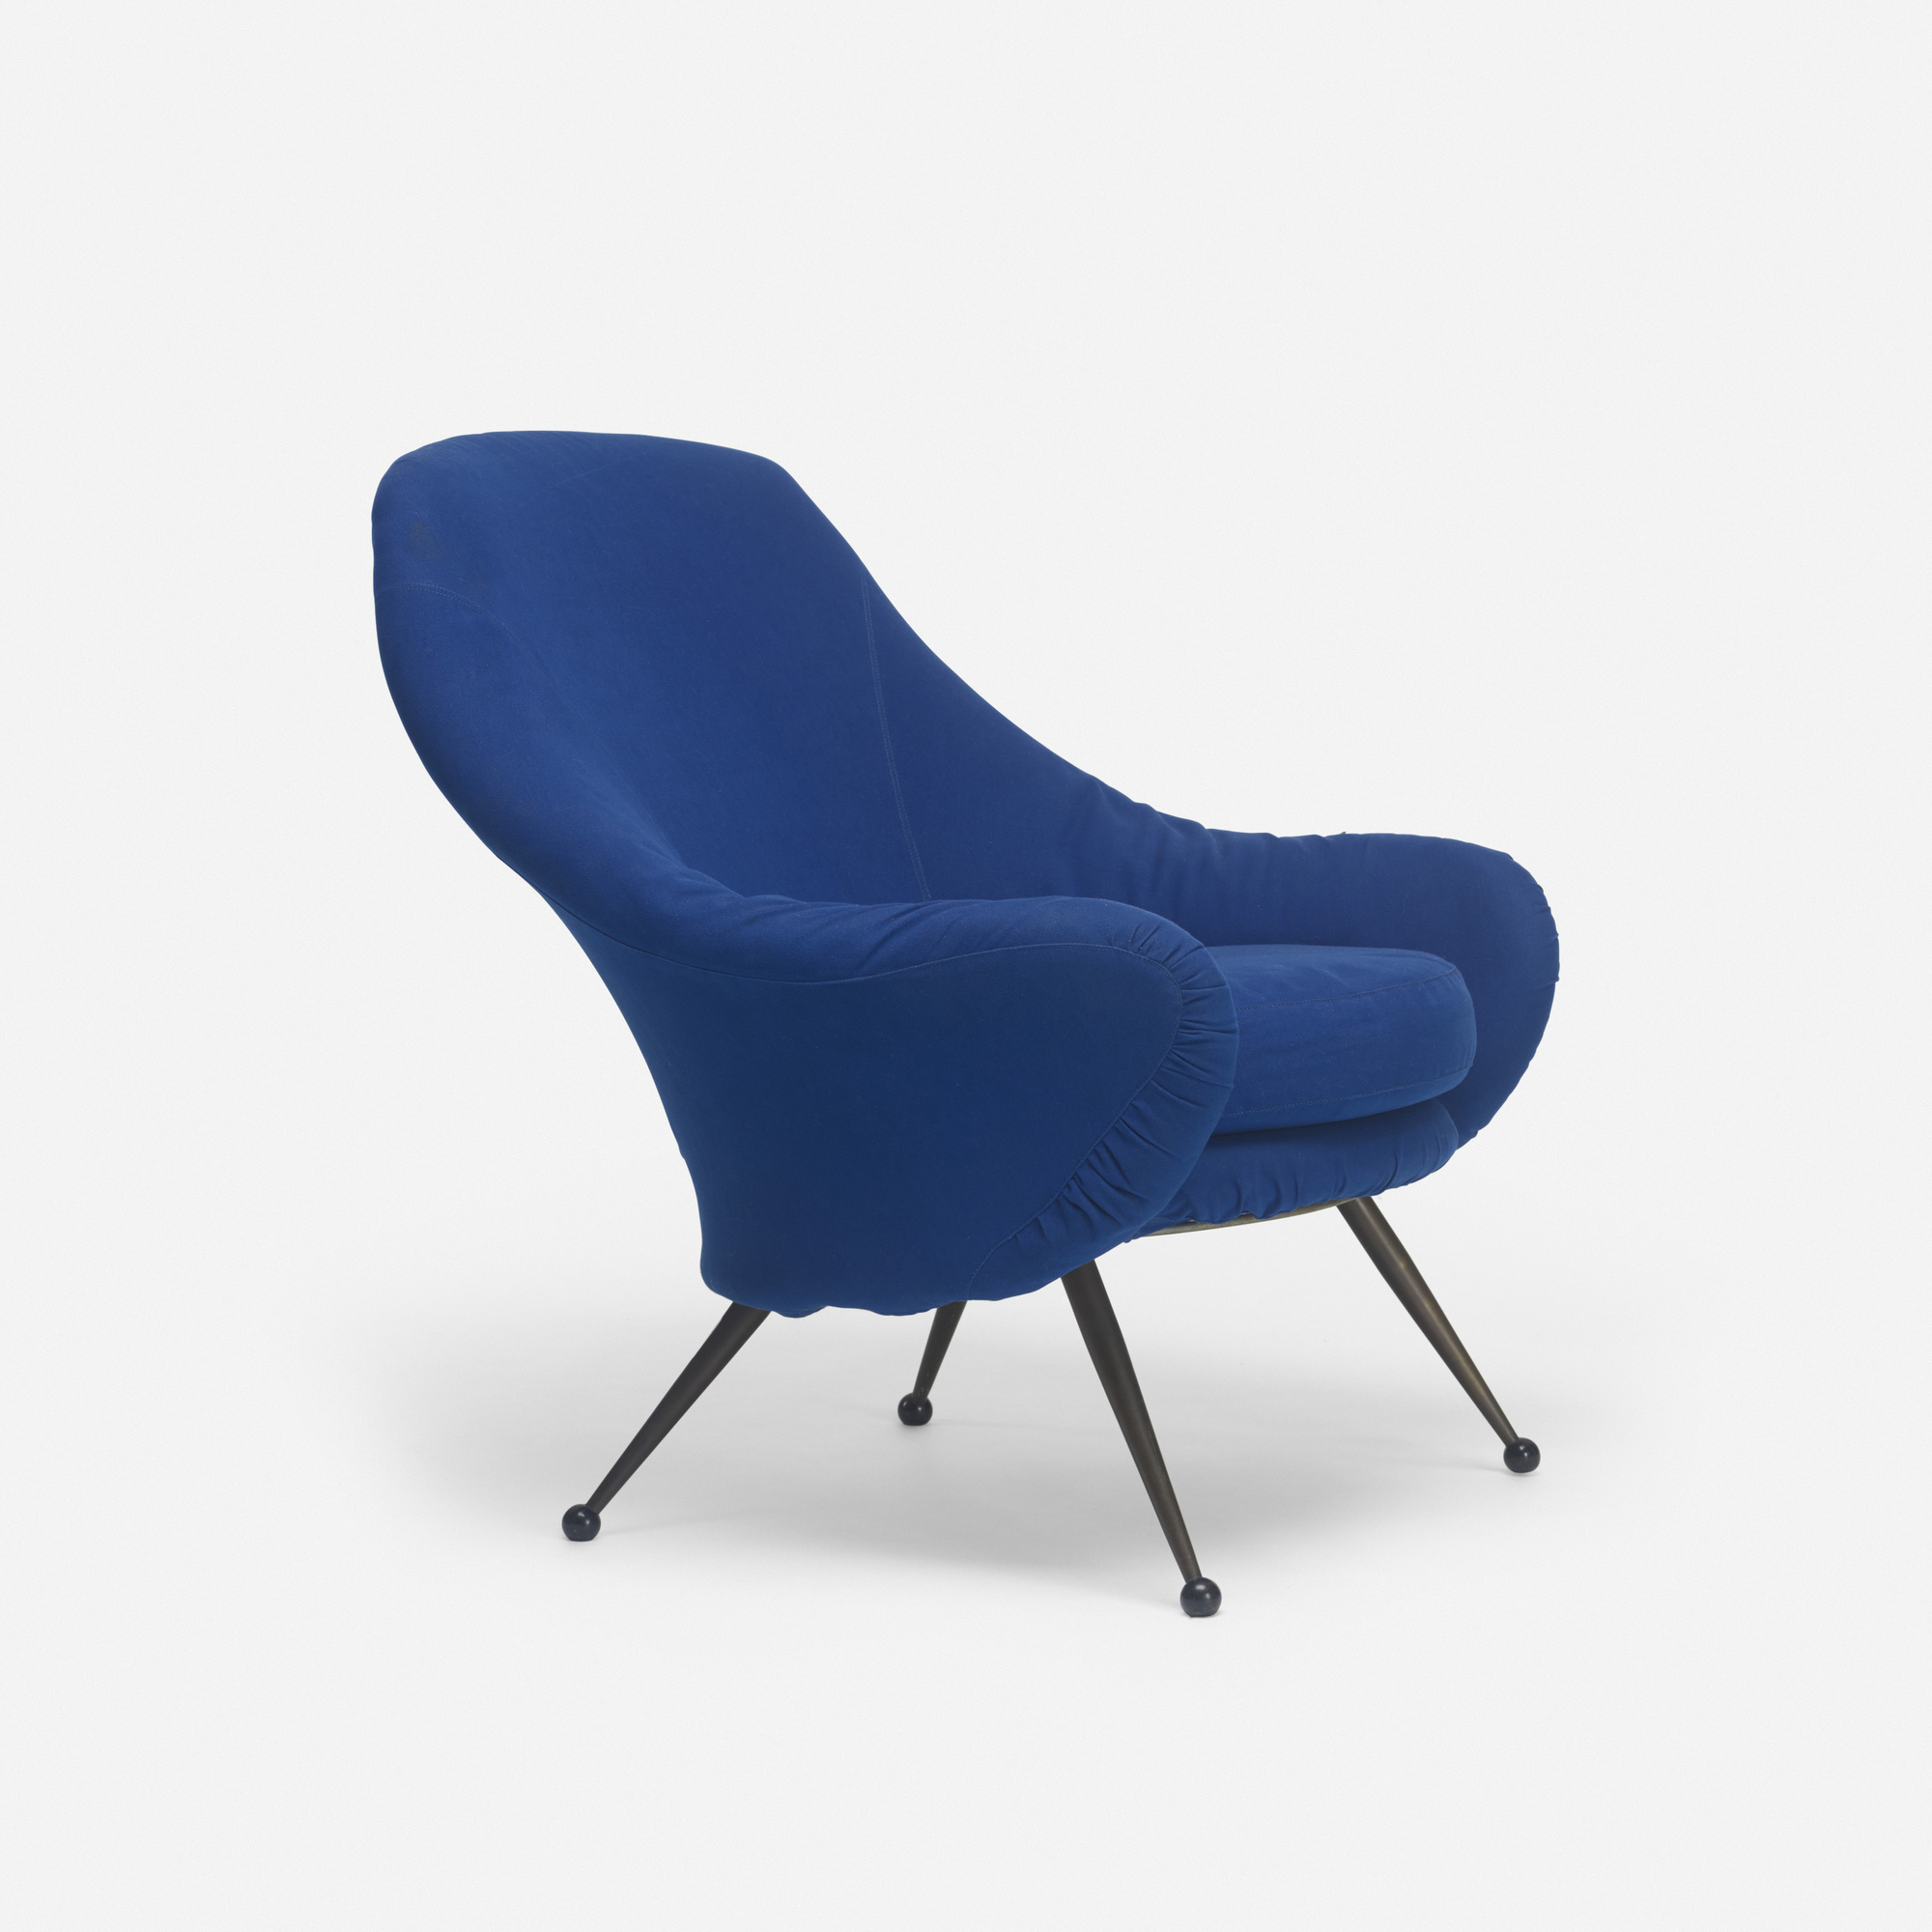 282: Marco Zanuso / Martingala lounge chair (1 of 2)